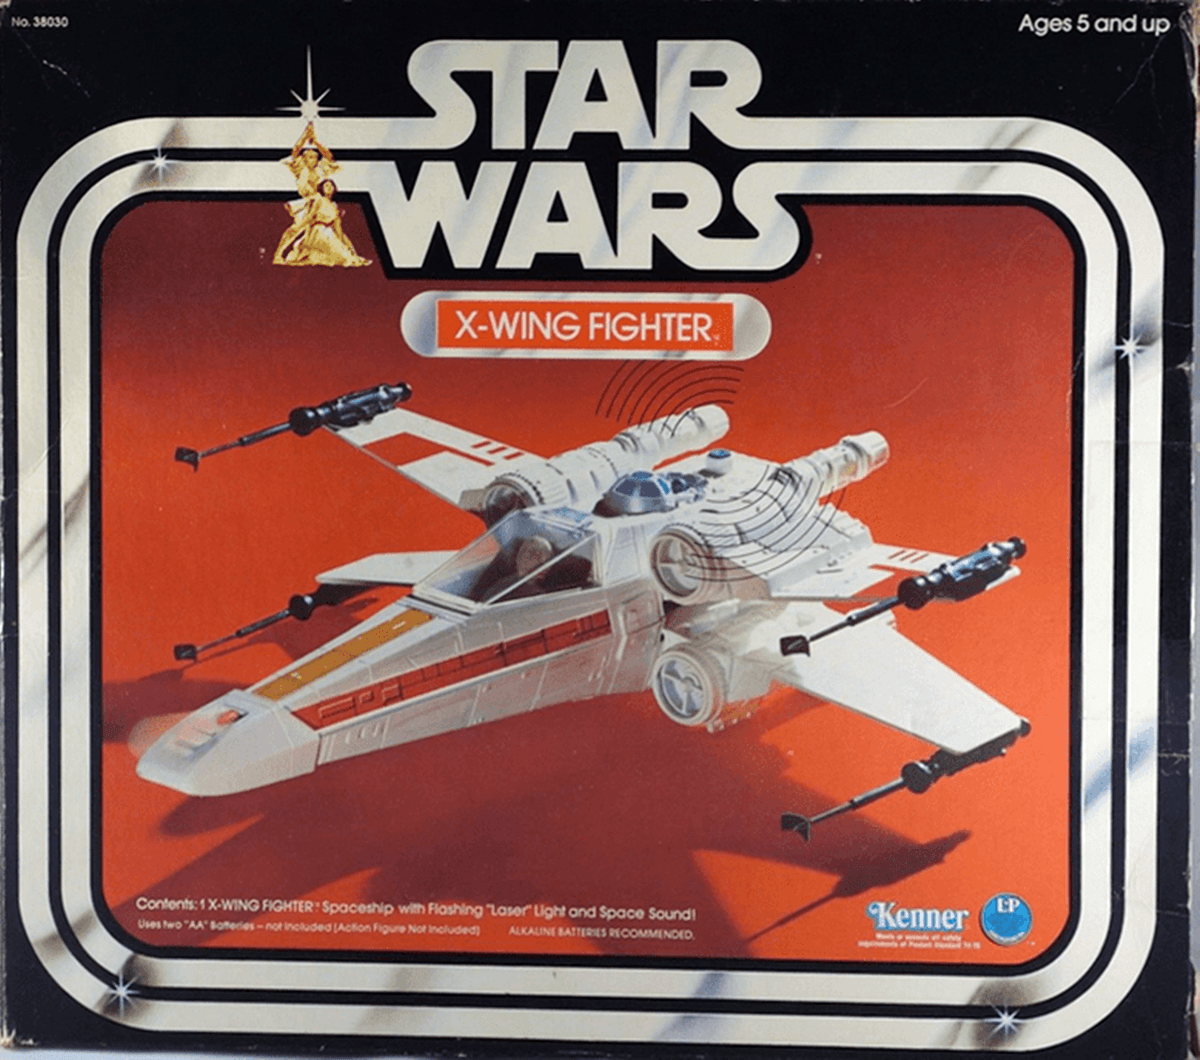 4 2 10 Star Wars Toys That Will Earn You A Fortune!